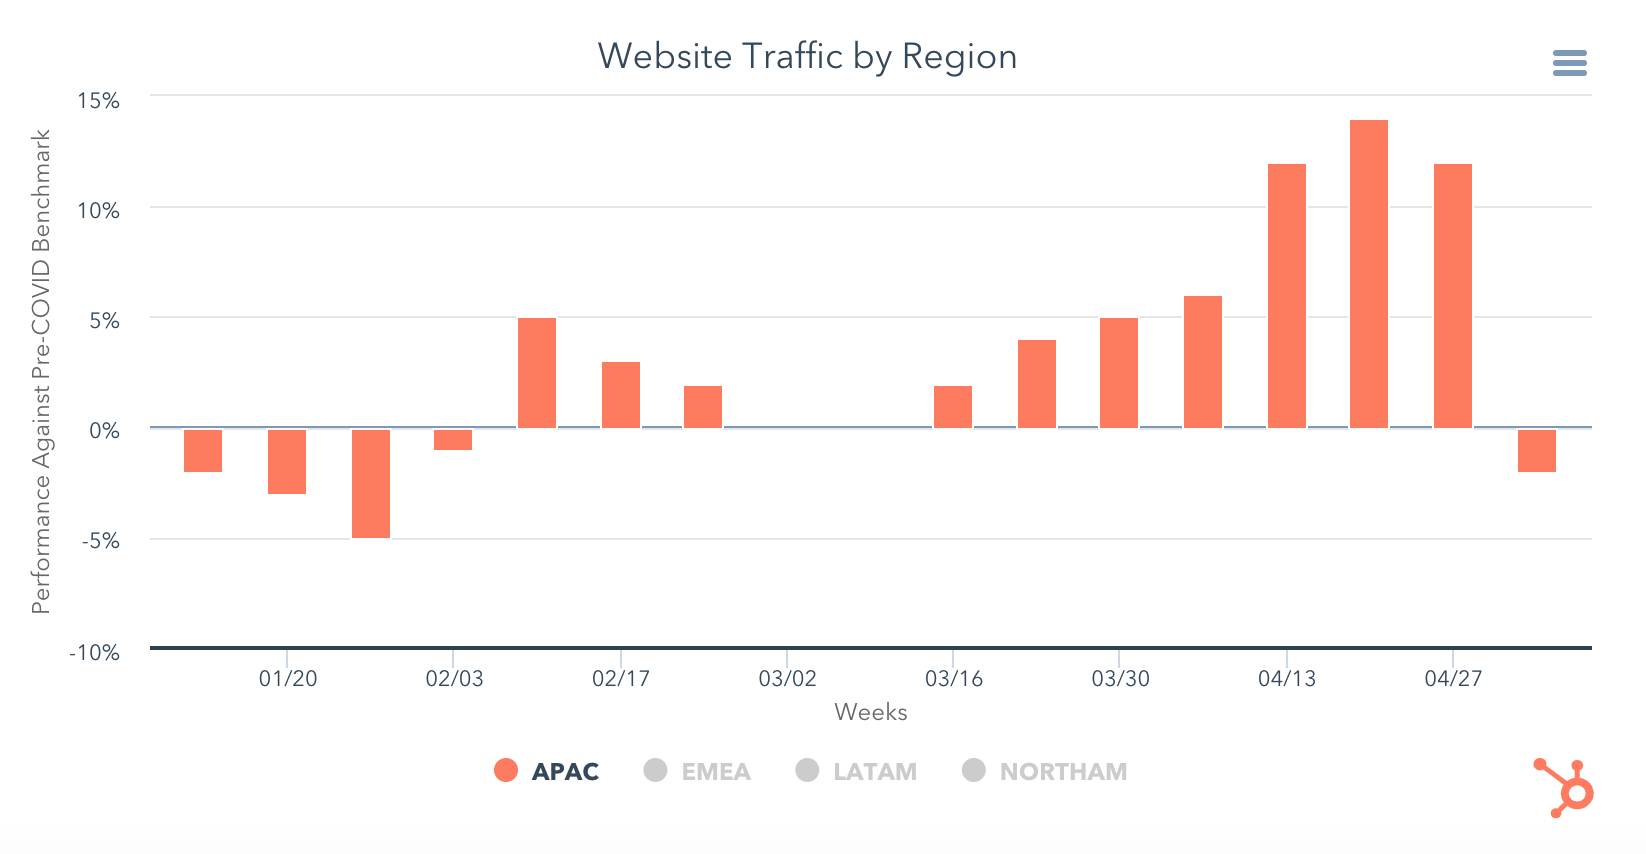 Website traffic in Australia during covid 19